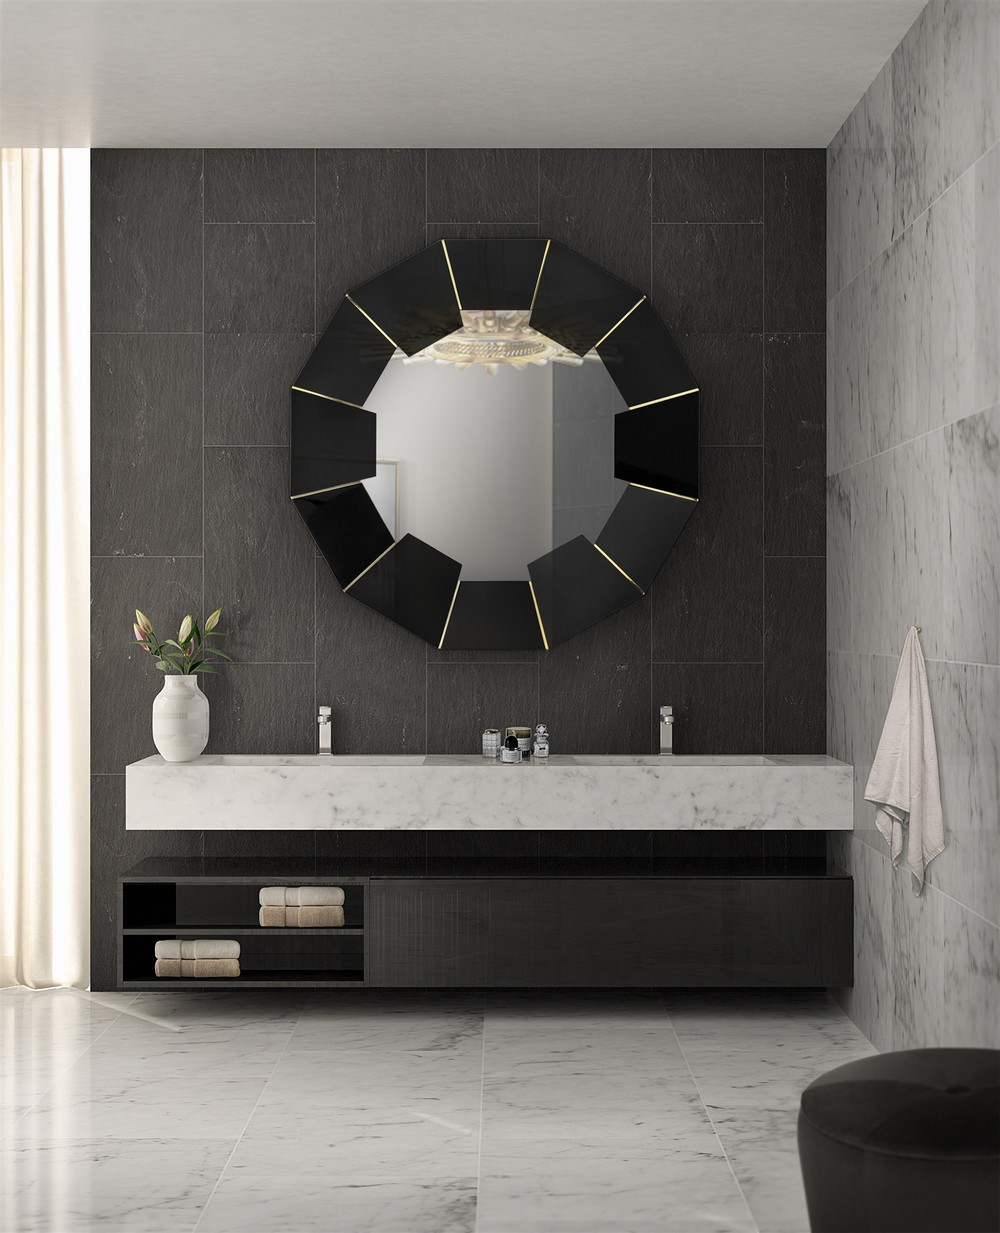 Bathroom Trends: 6 Ingenious Design Ideas to Create a Stylish Interior